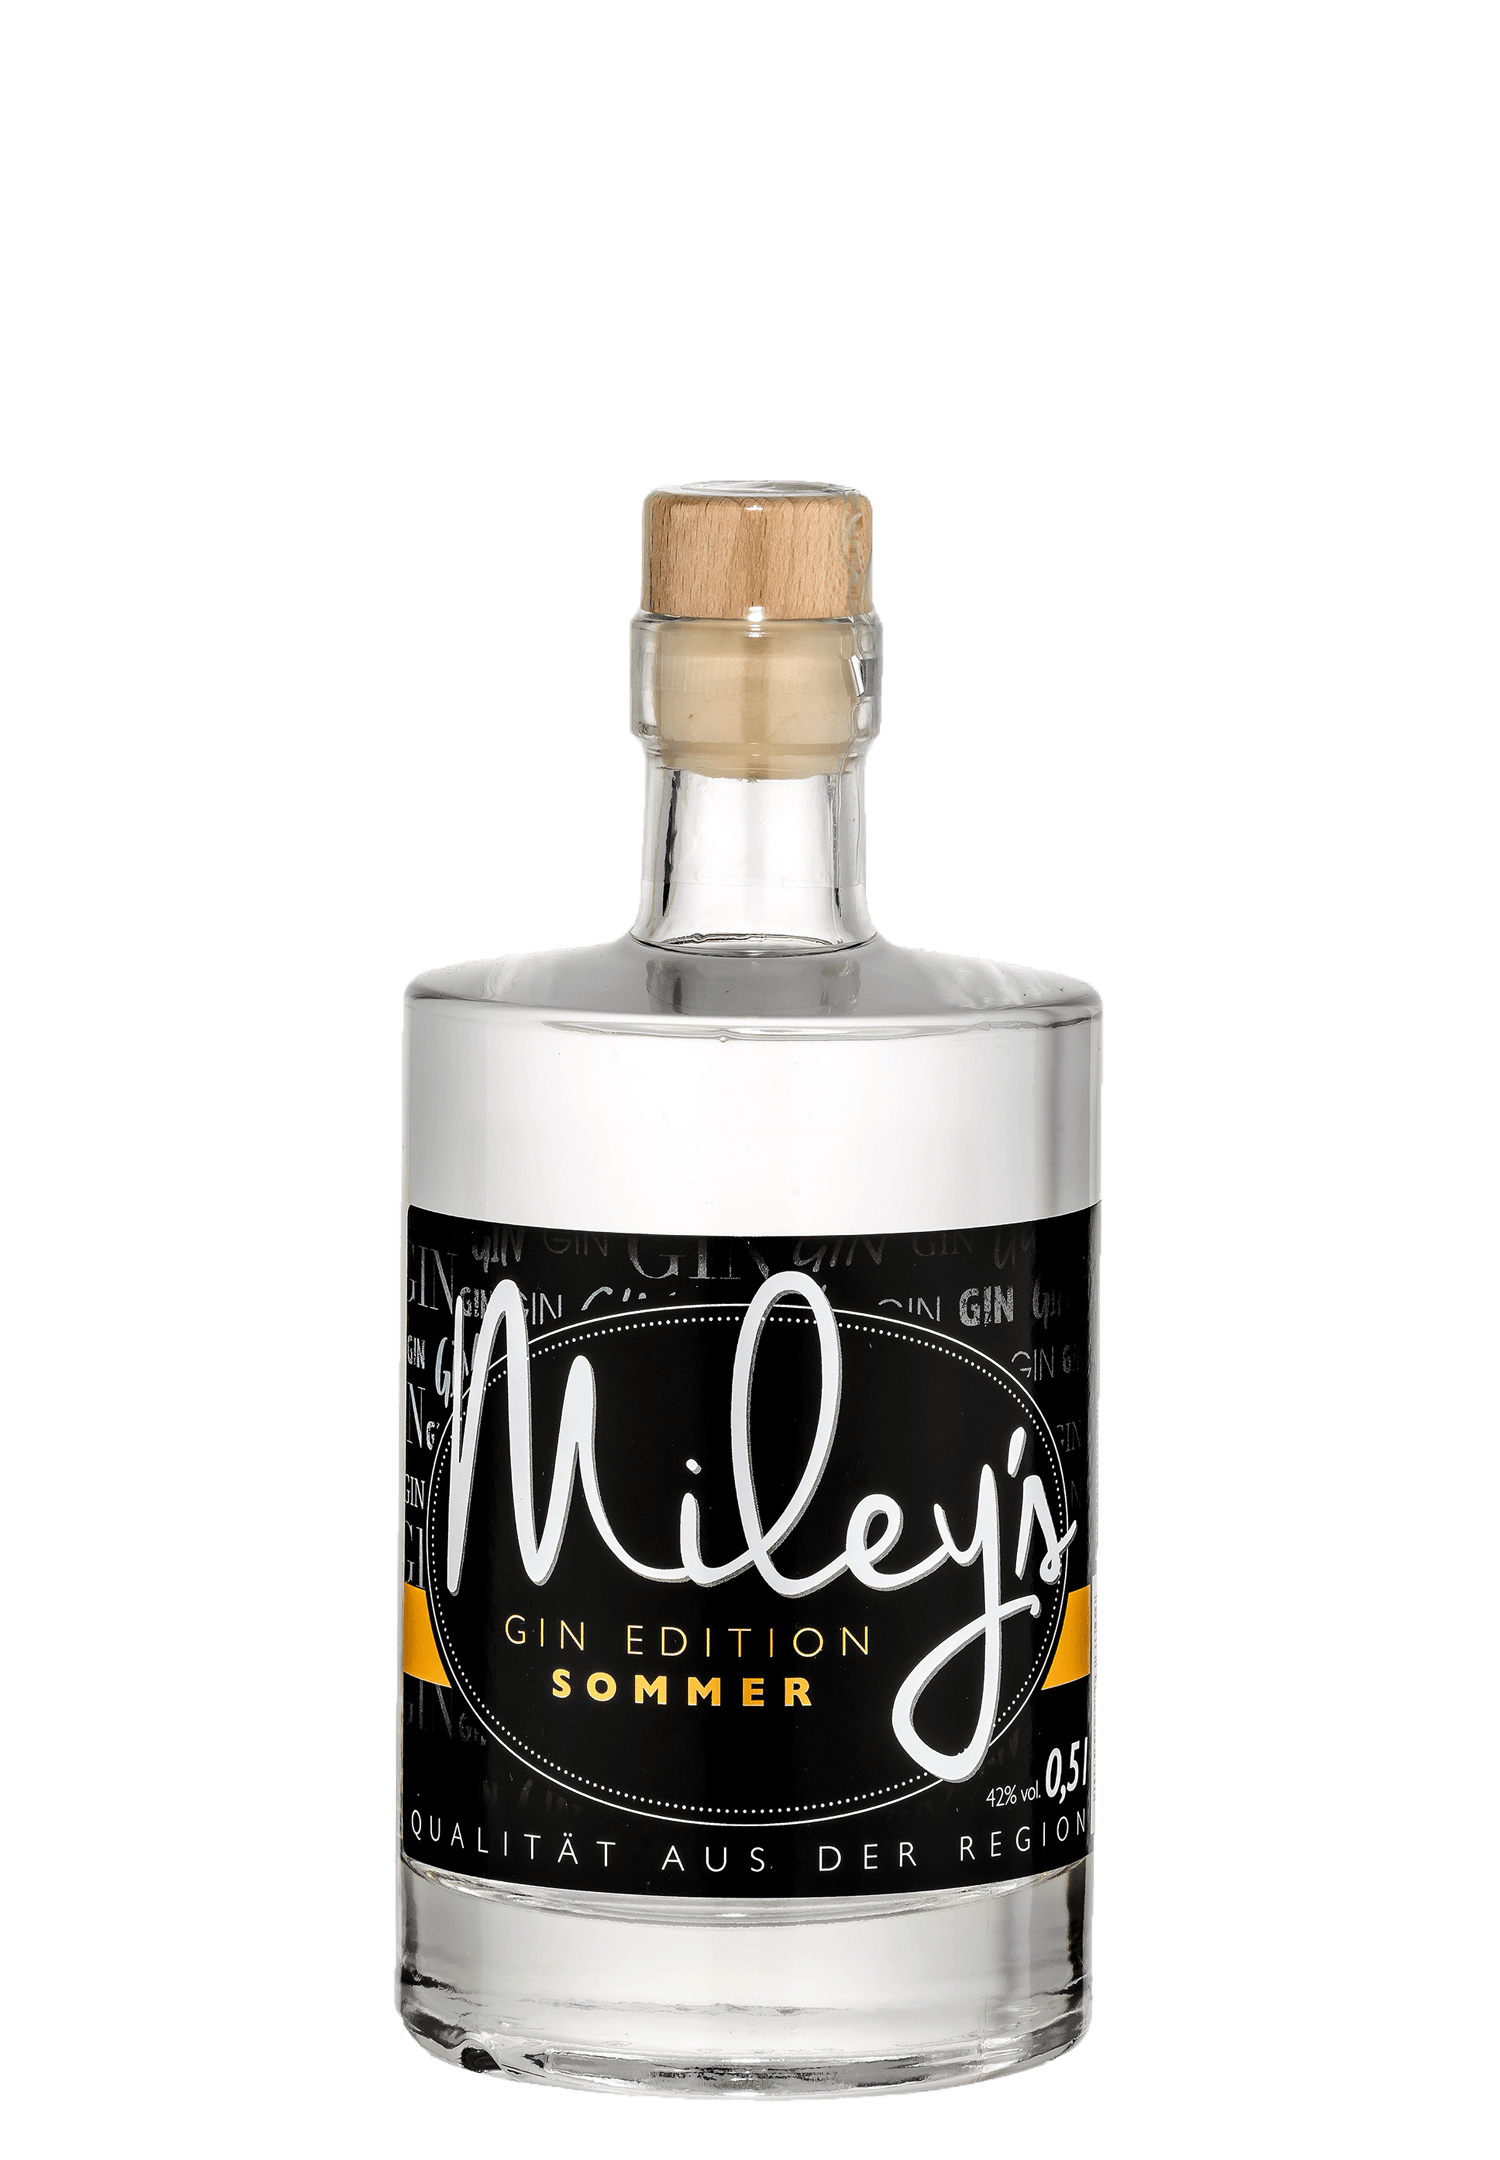 Miley's Sommer Gin